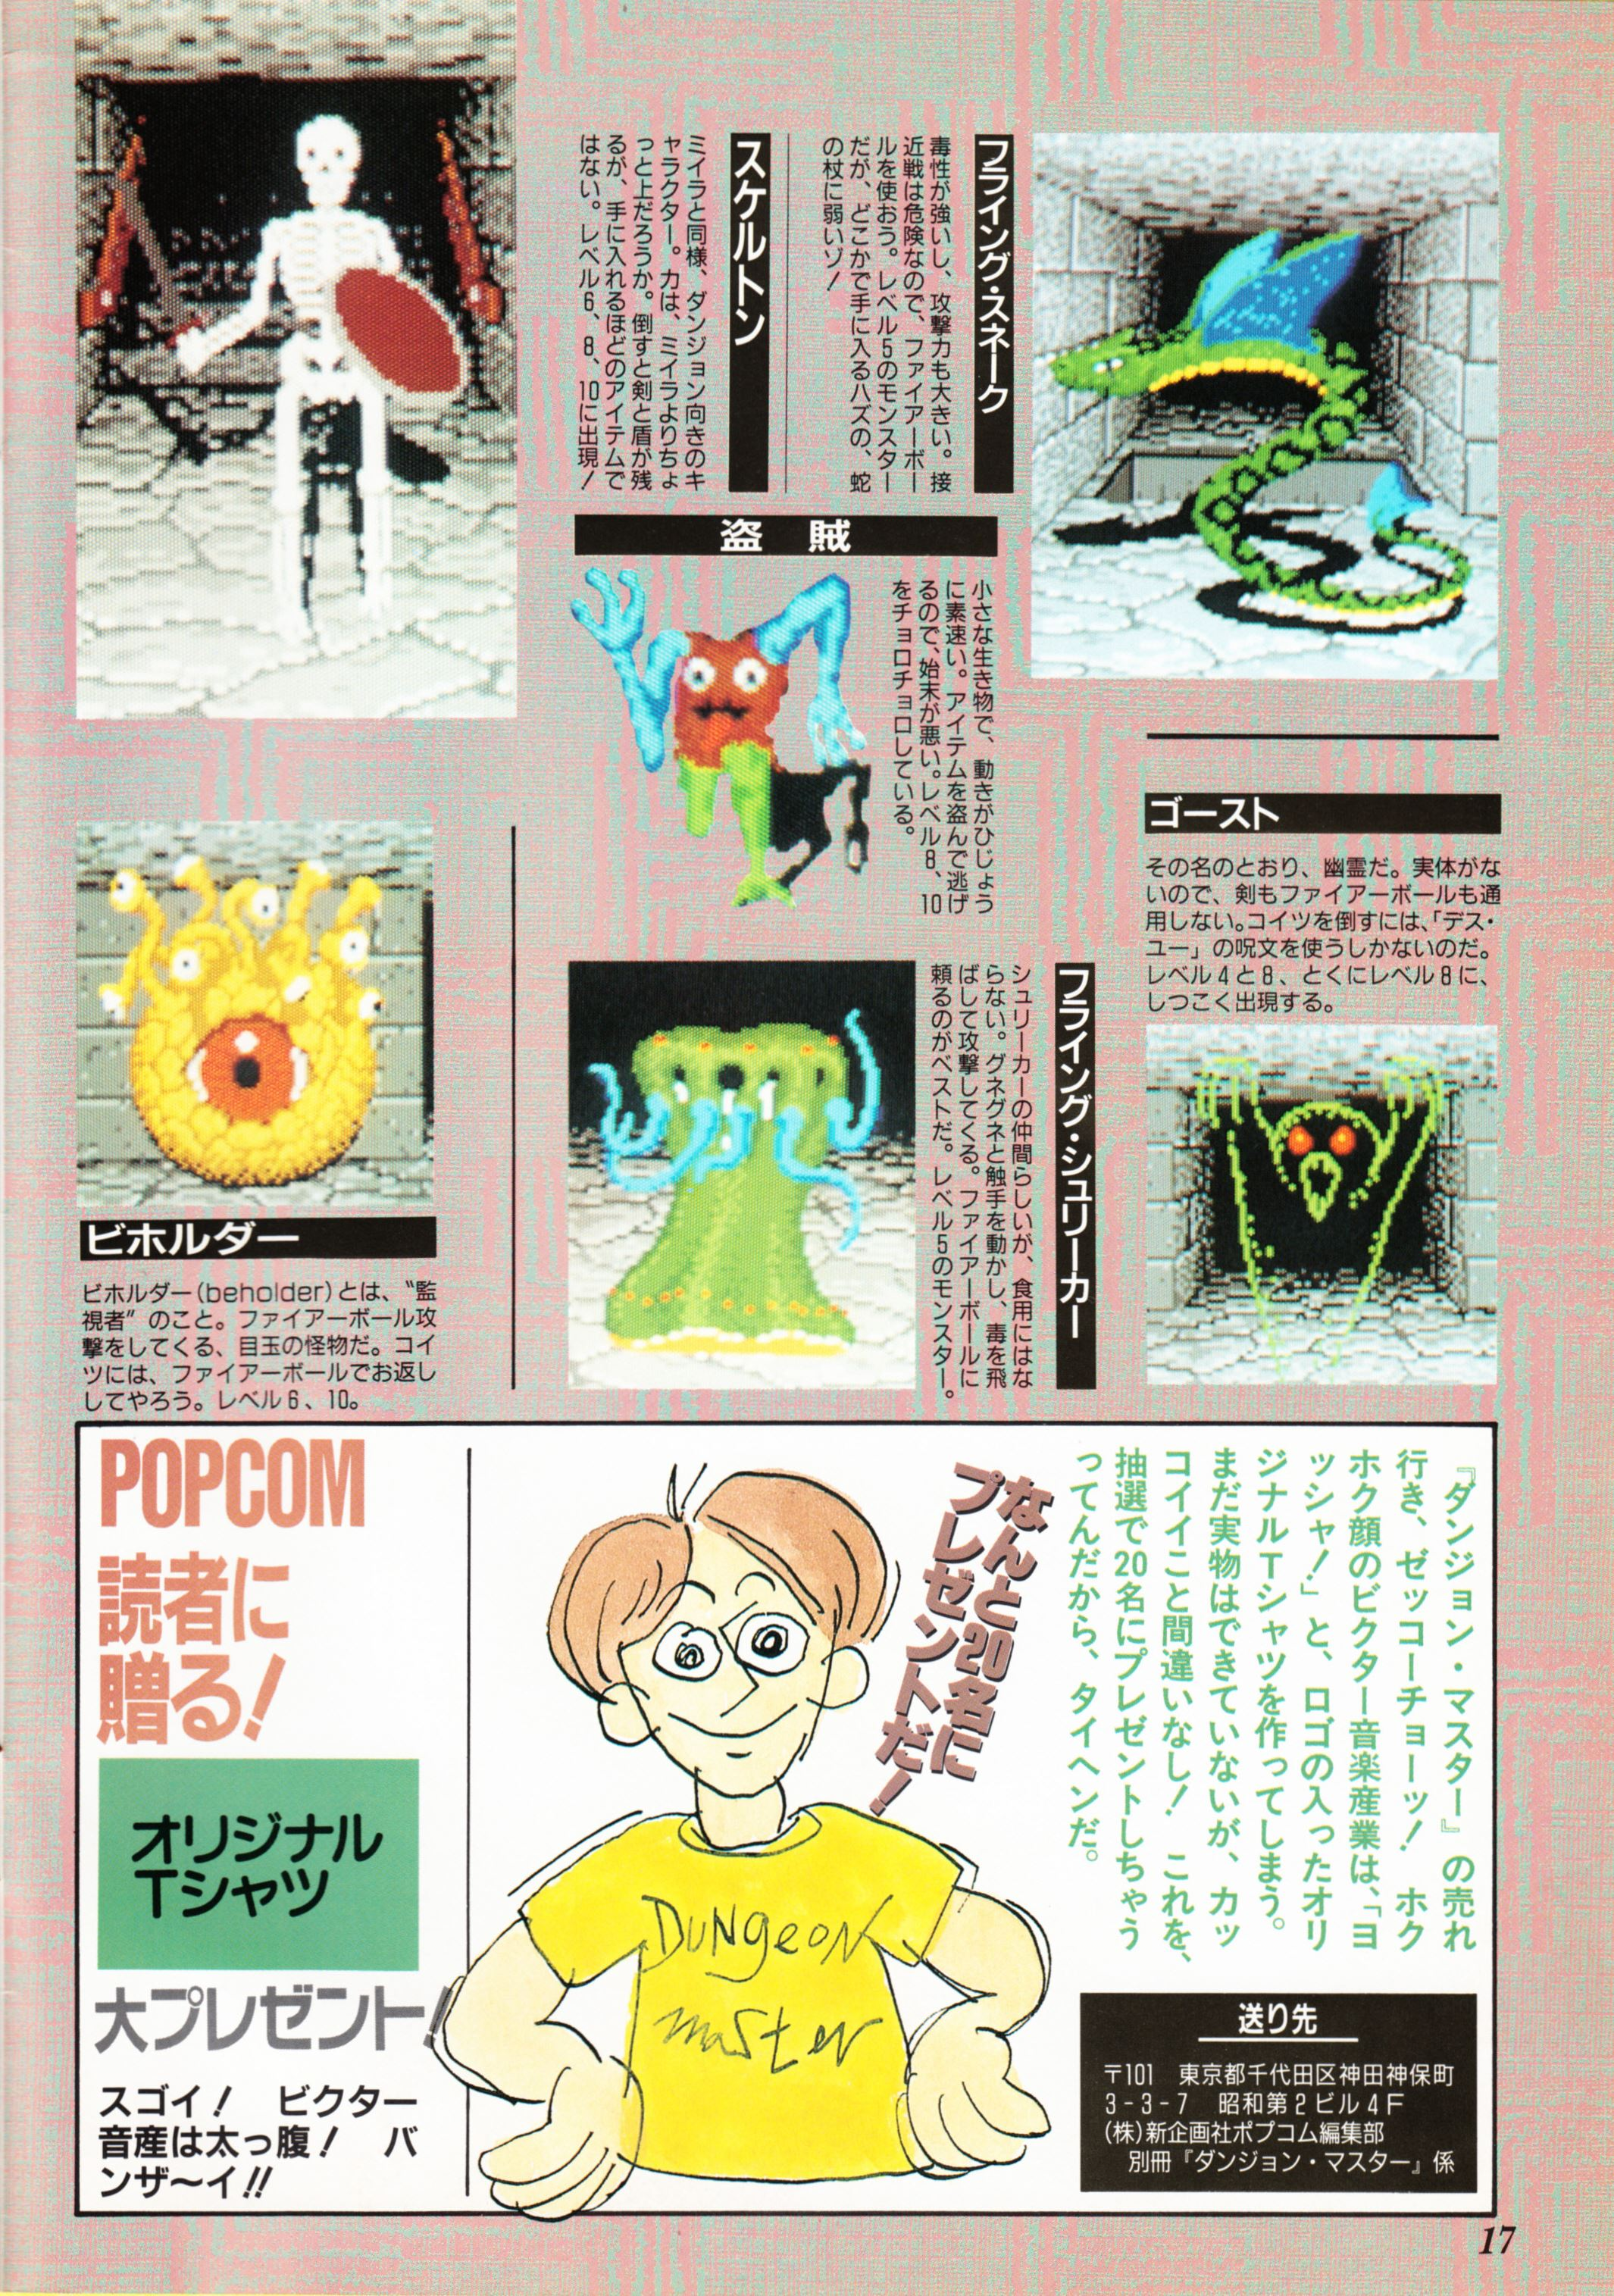 Supplement - Dungeon Master Companion Manual Guide published in Japanese magazine 'Popcom', Vol 4 No 1 01 April 1990, Page 19